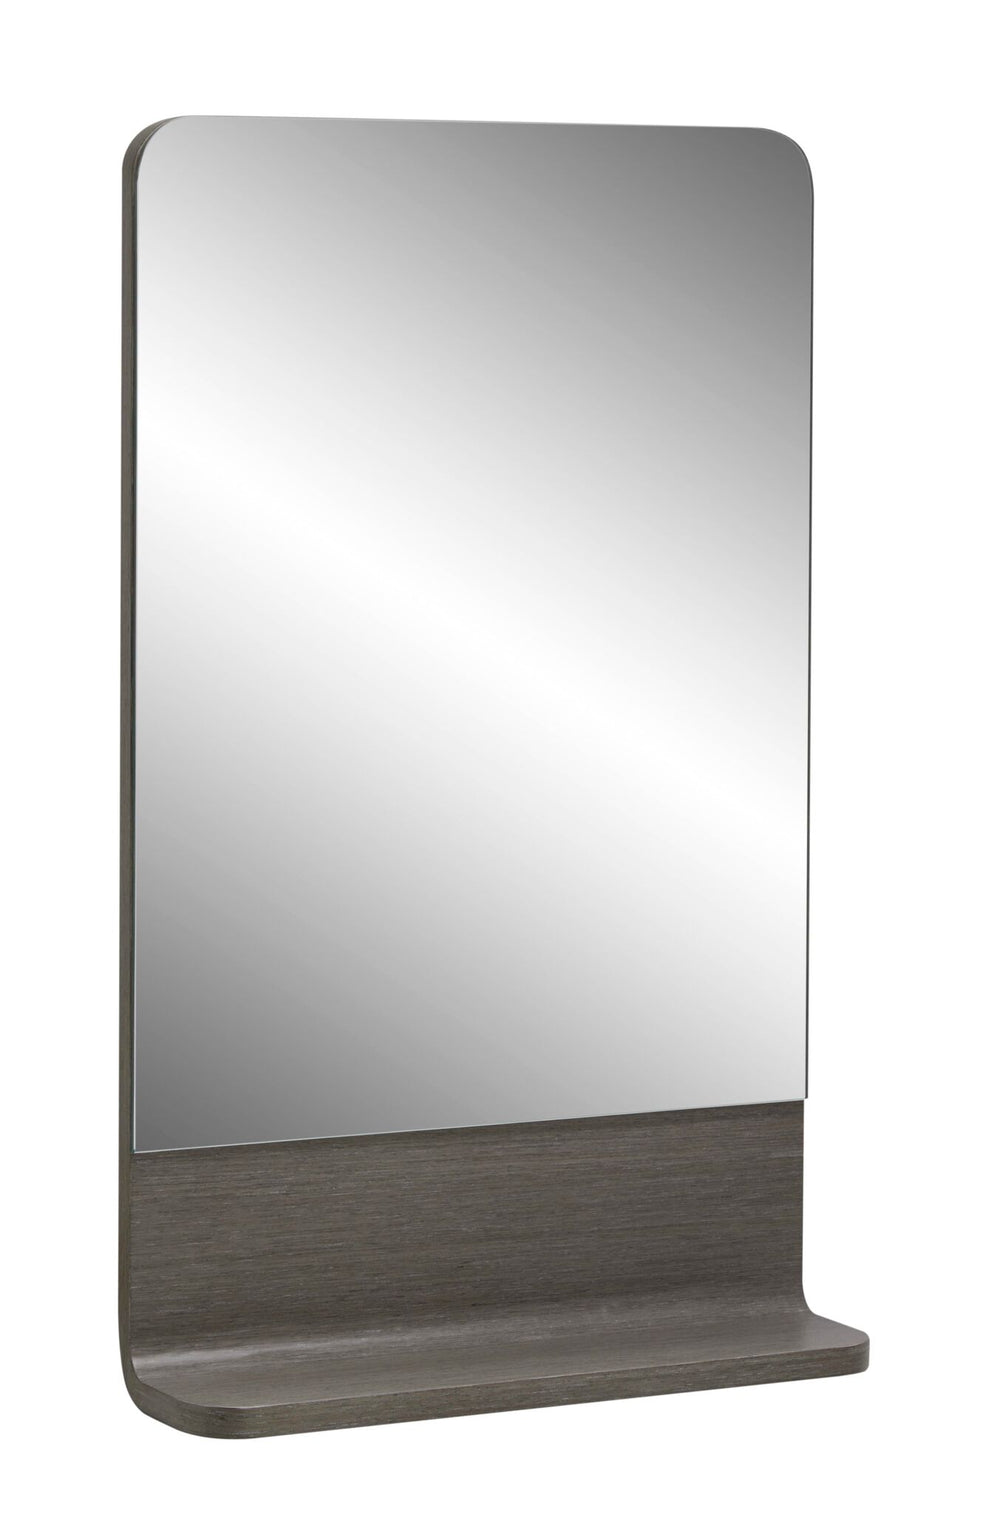 Cara 450 Mirror Shelf ASH GREY